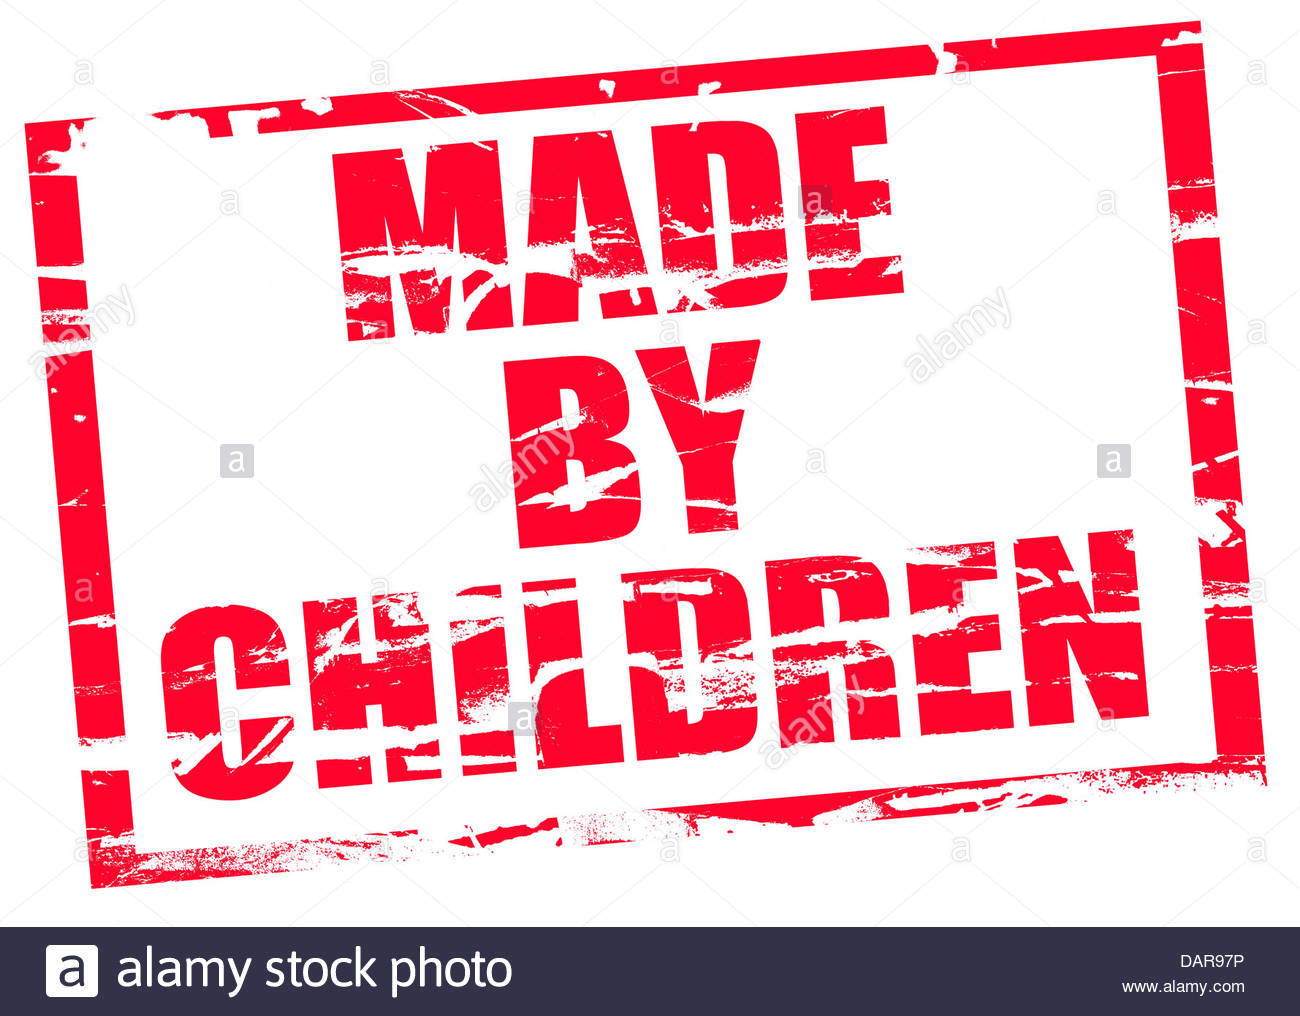 Digital composite Rubber stamp. Made by children. - Stock Image